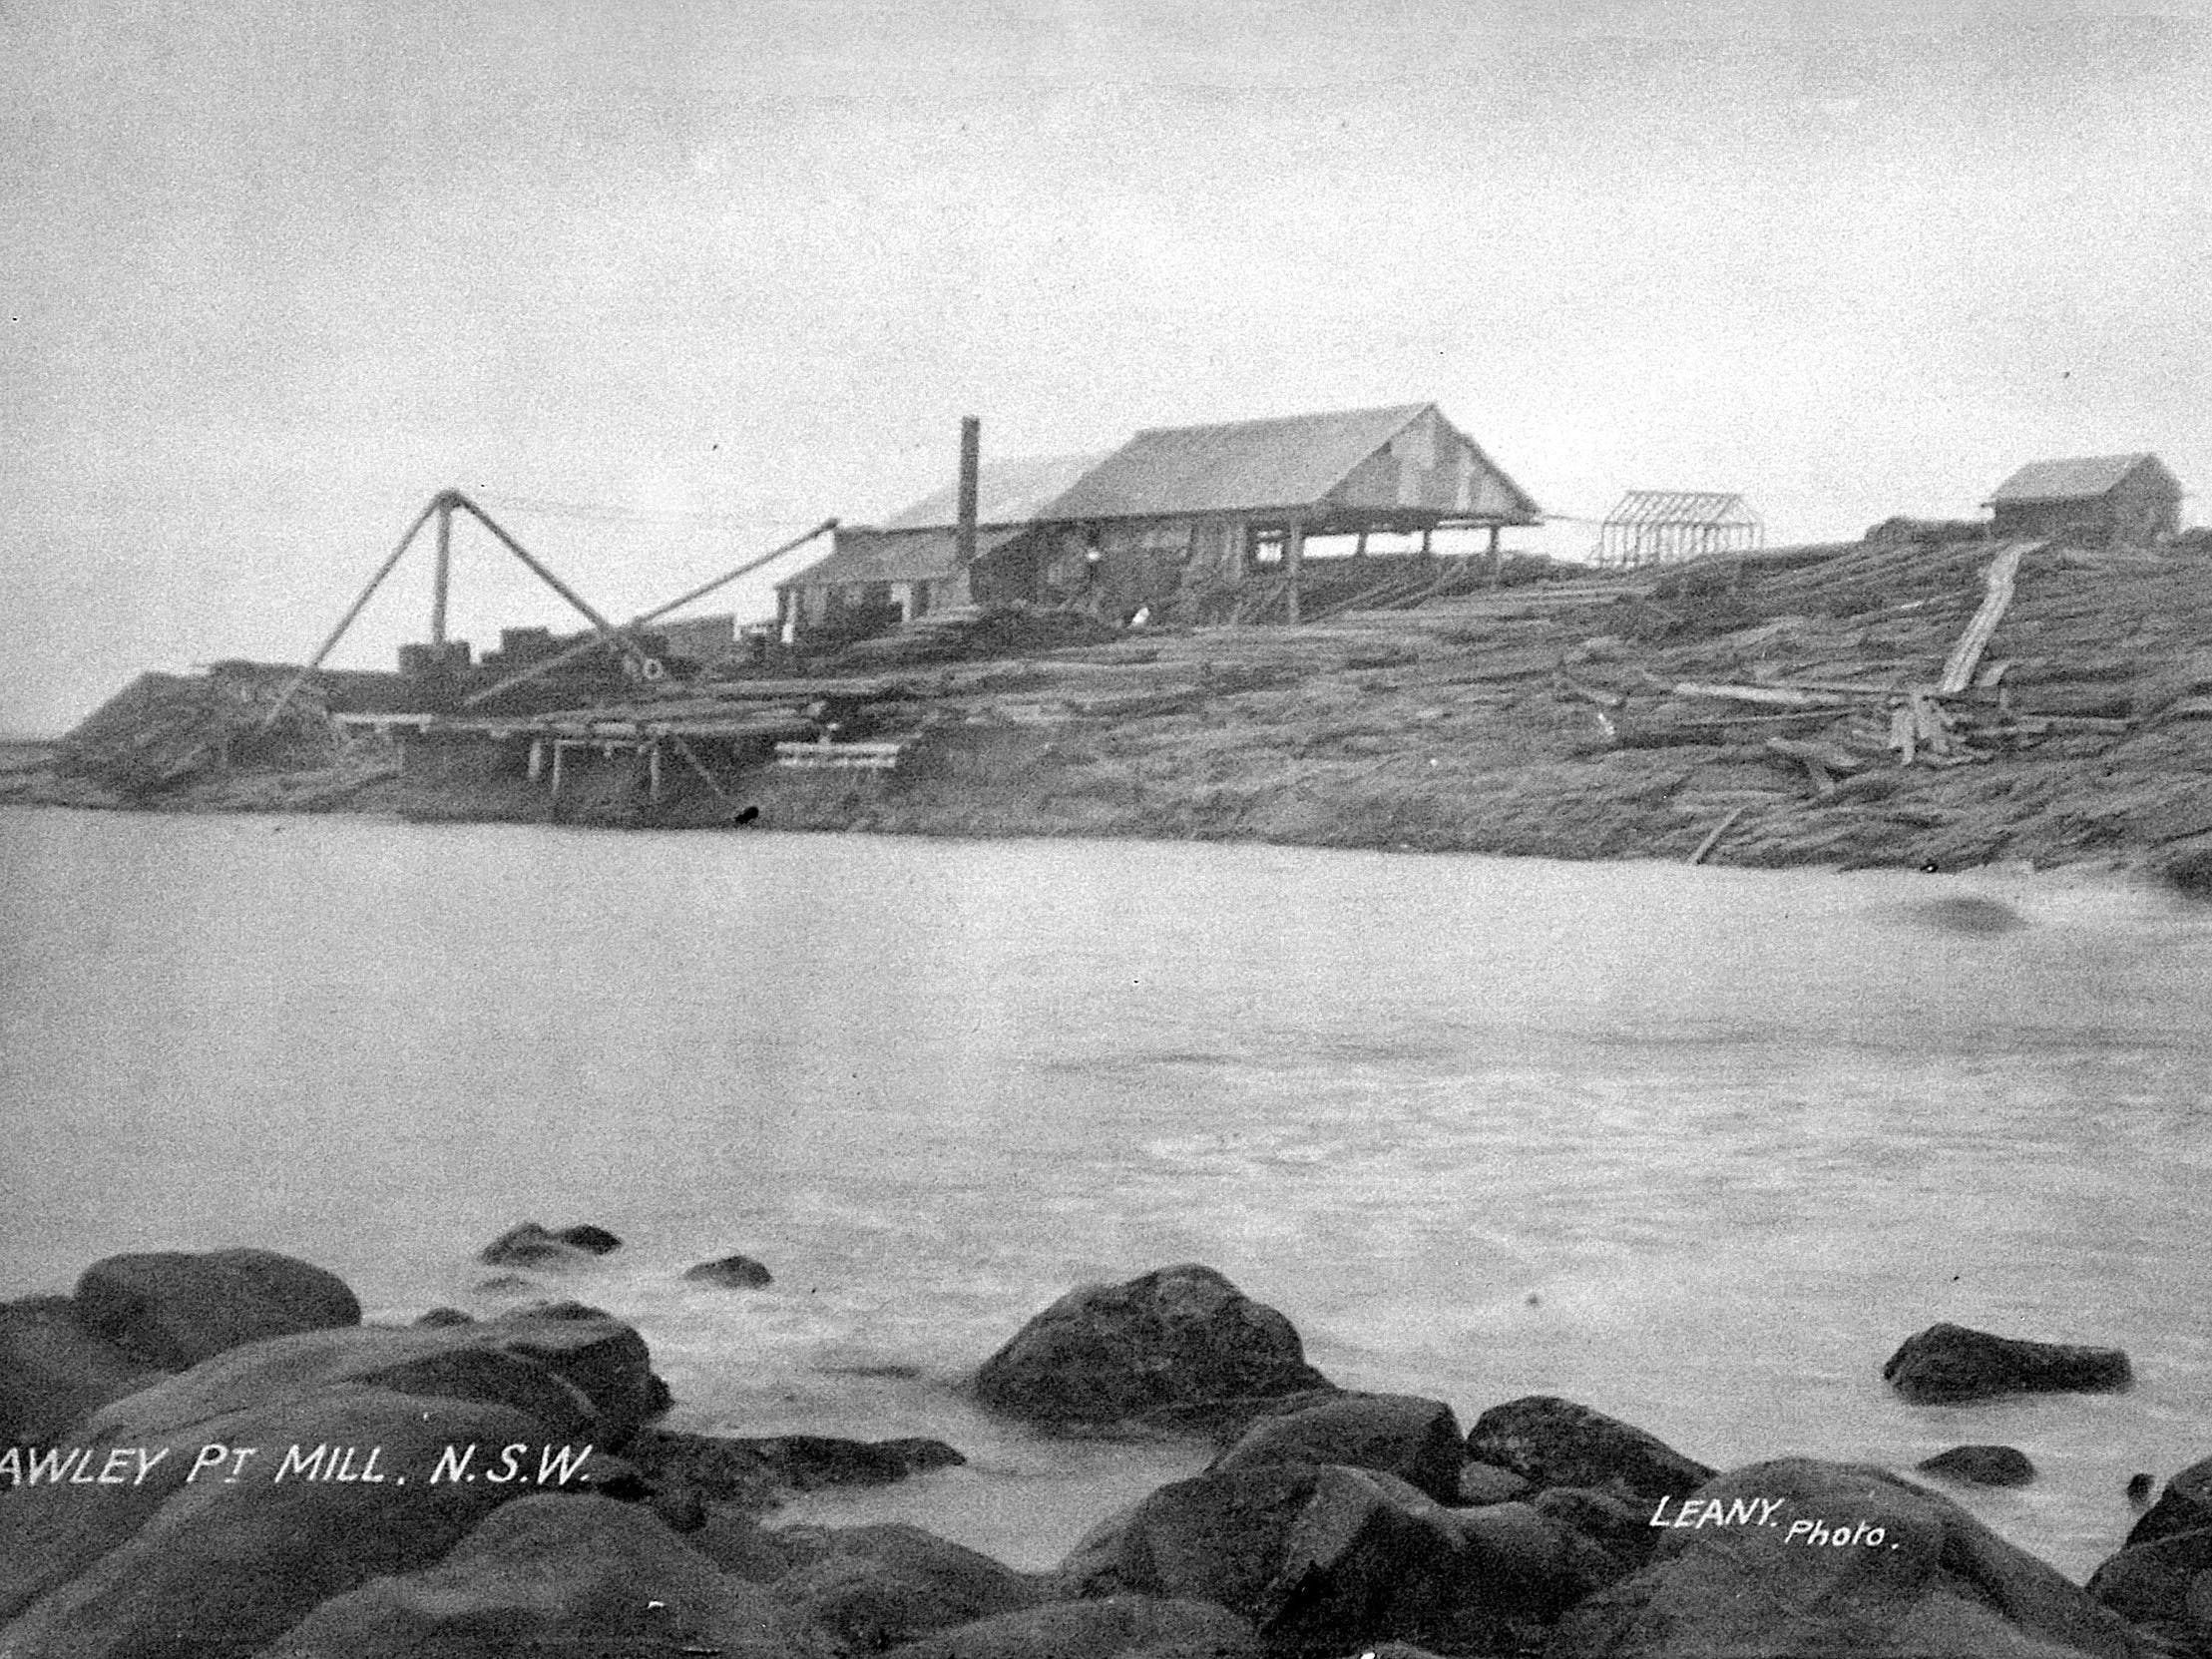 Bawley Point Timber Mill